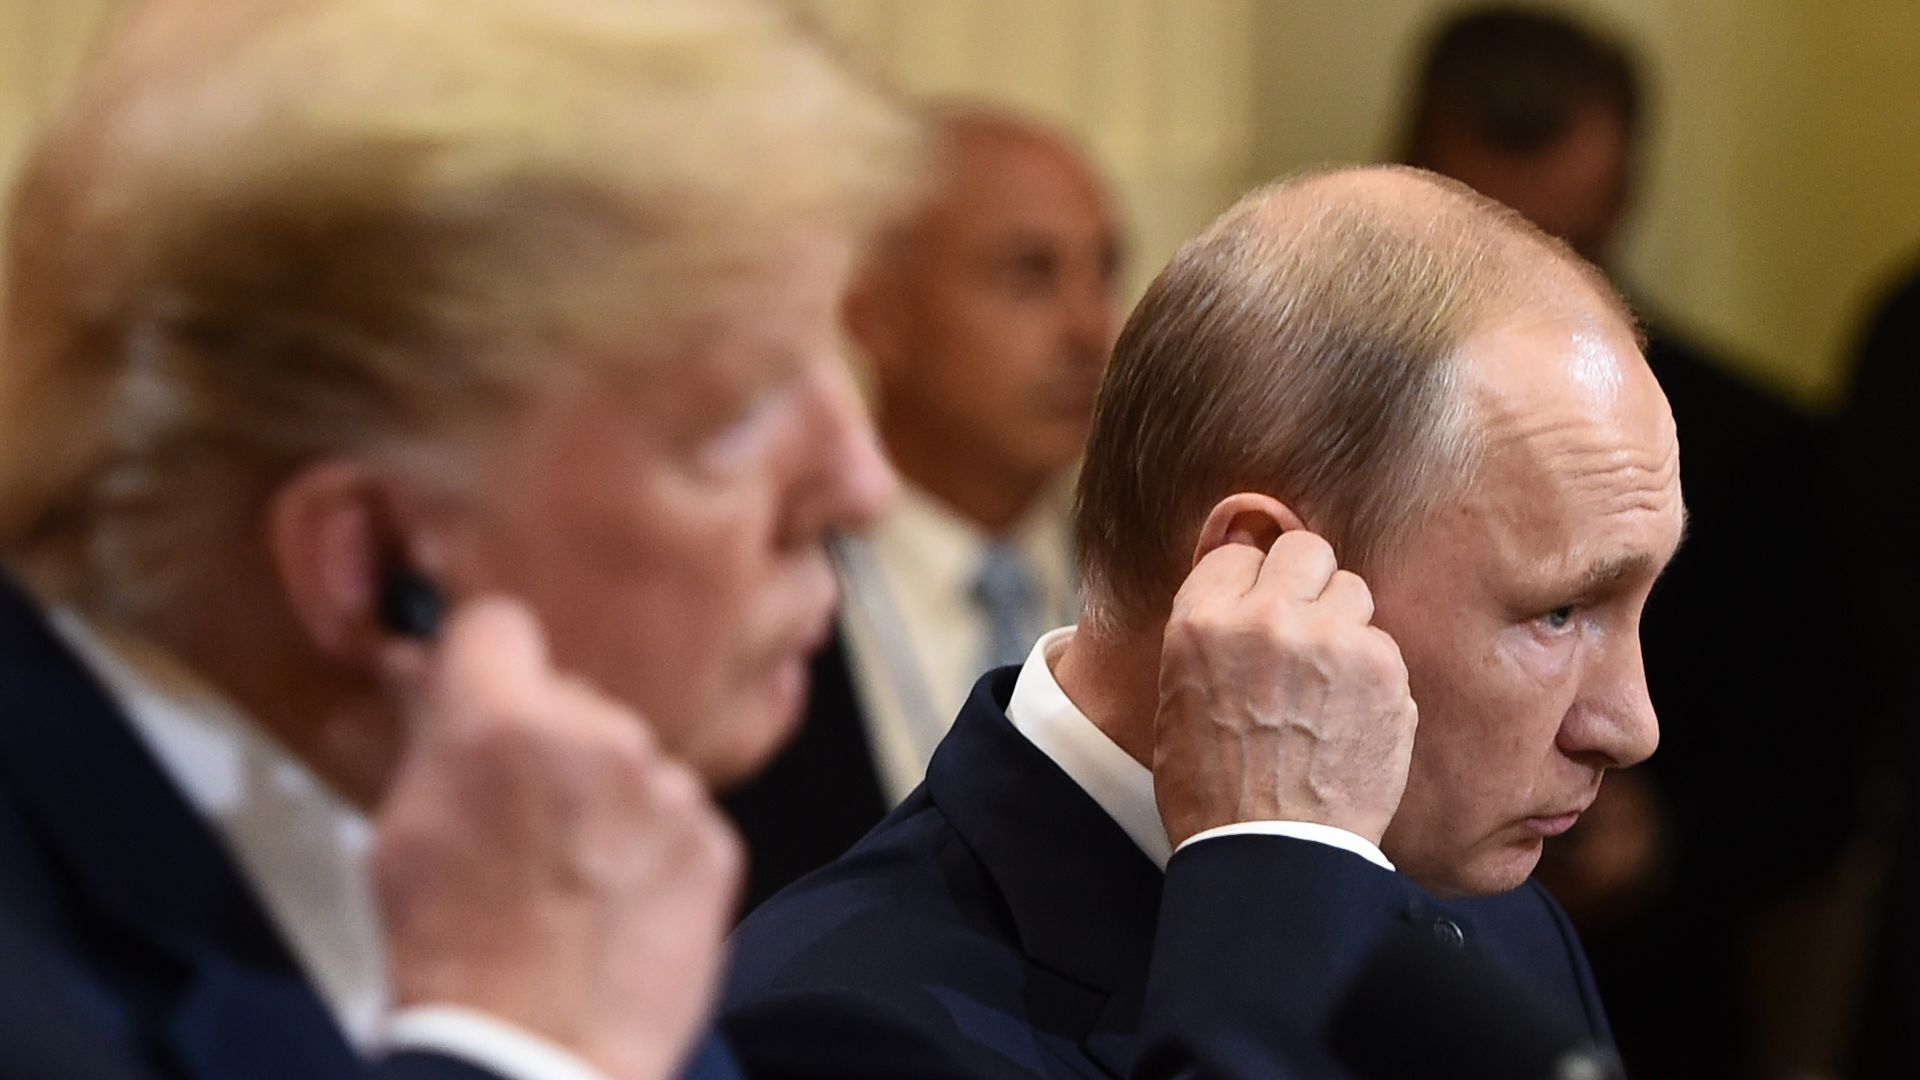 President Donald Trump and Russia's President Vladimir sitting next to each other at a press conference